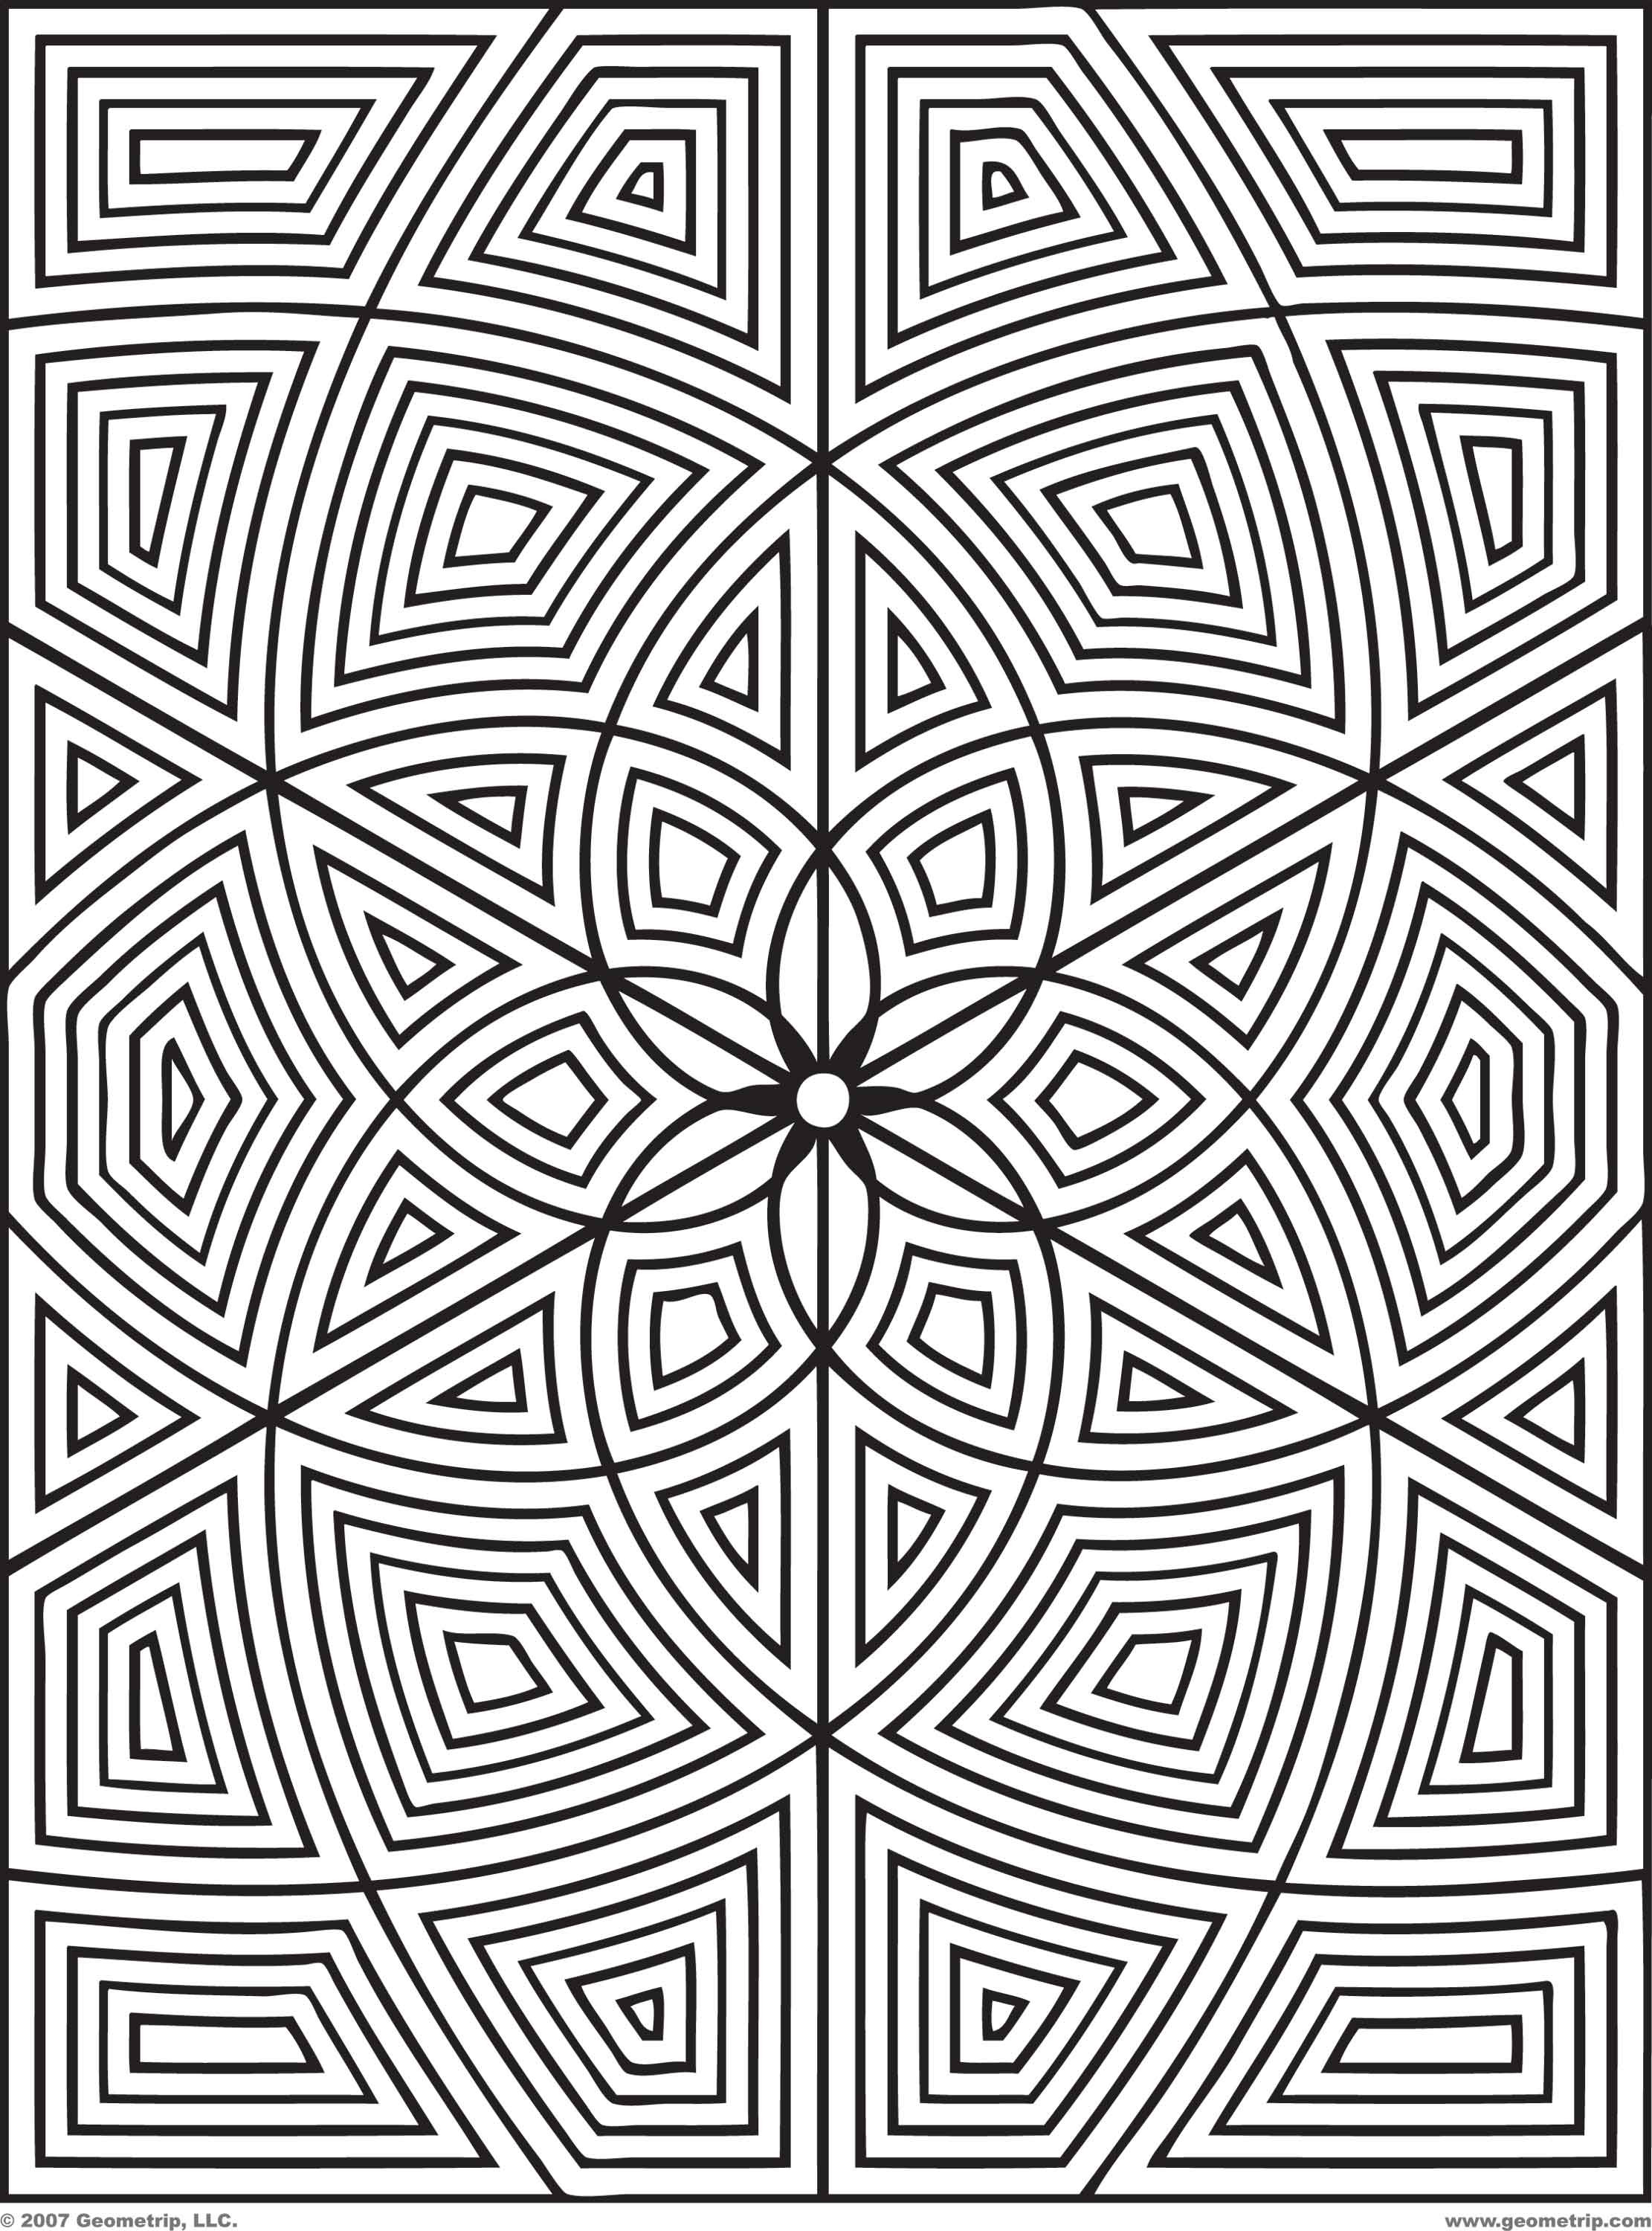 Best ideas about Geometric Coloring Pages For Adults . Save or Pin Free Geometric Coloring Pages For Adults Printable Kids Now.